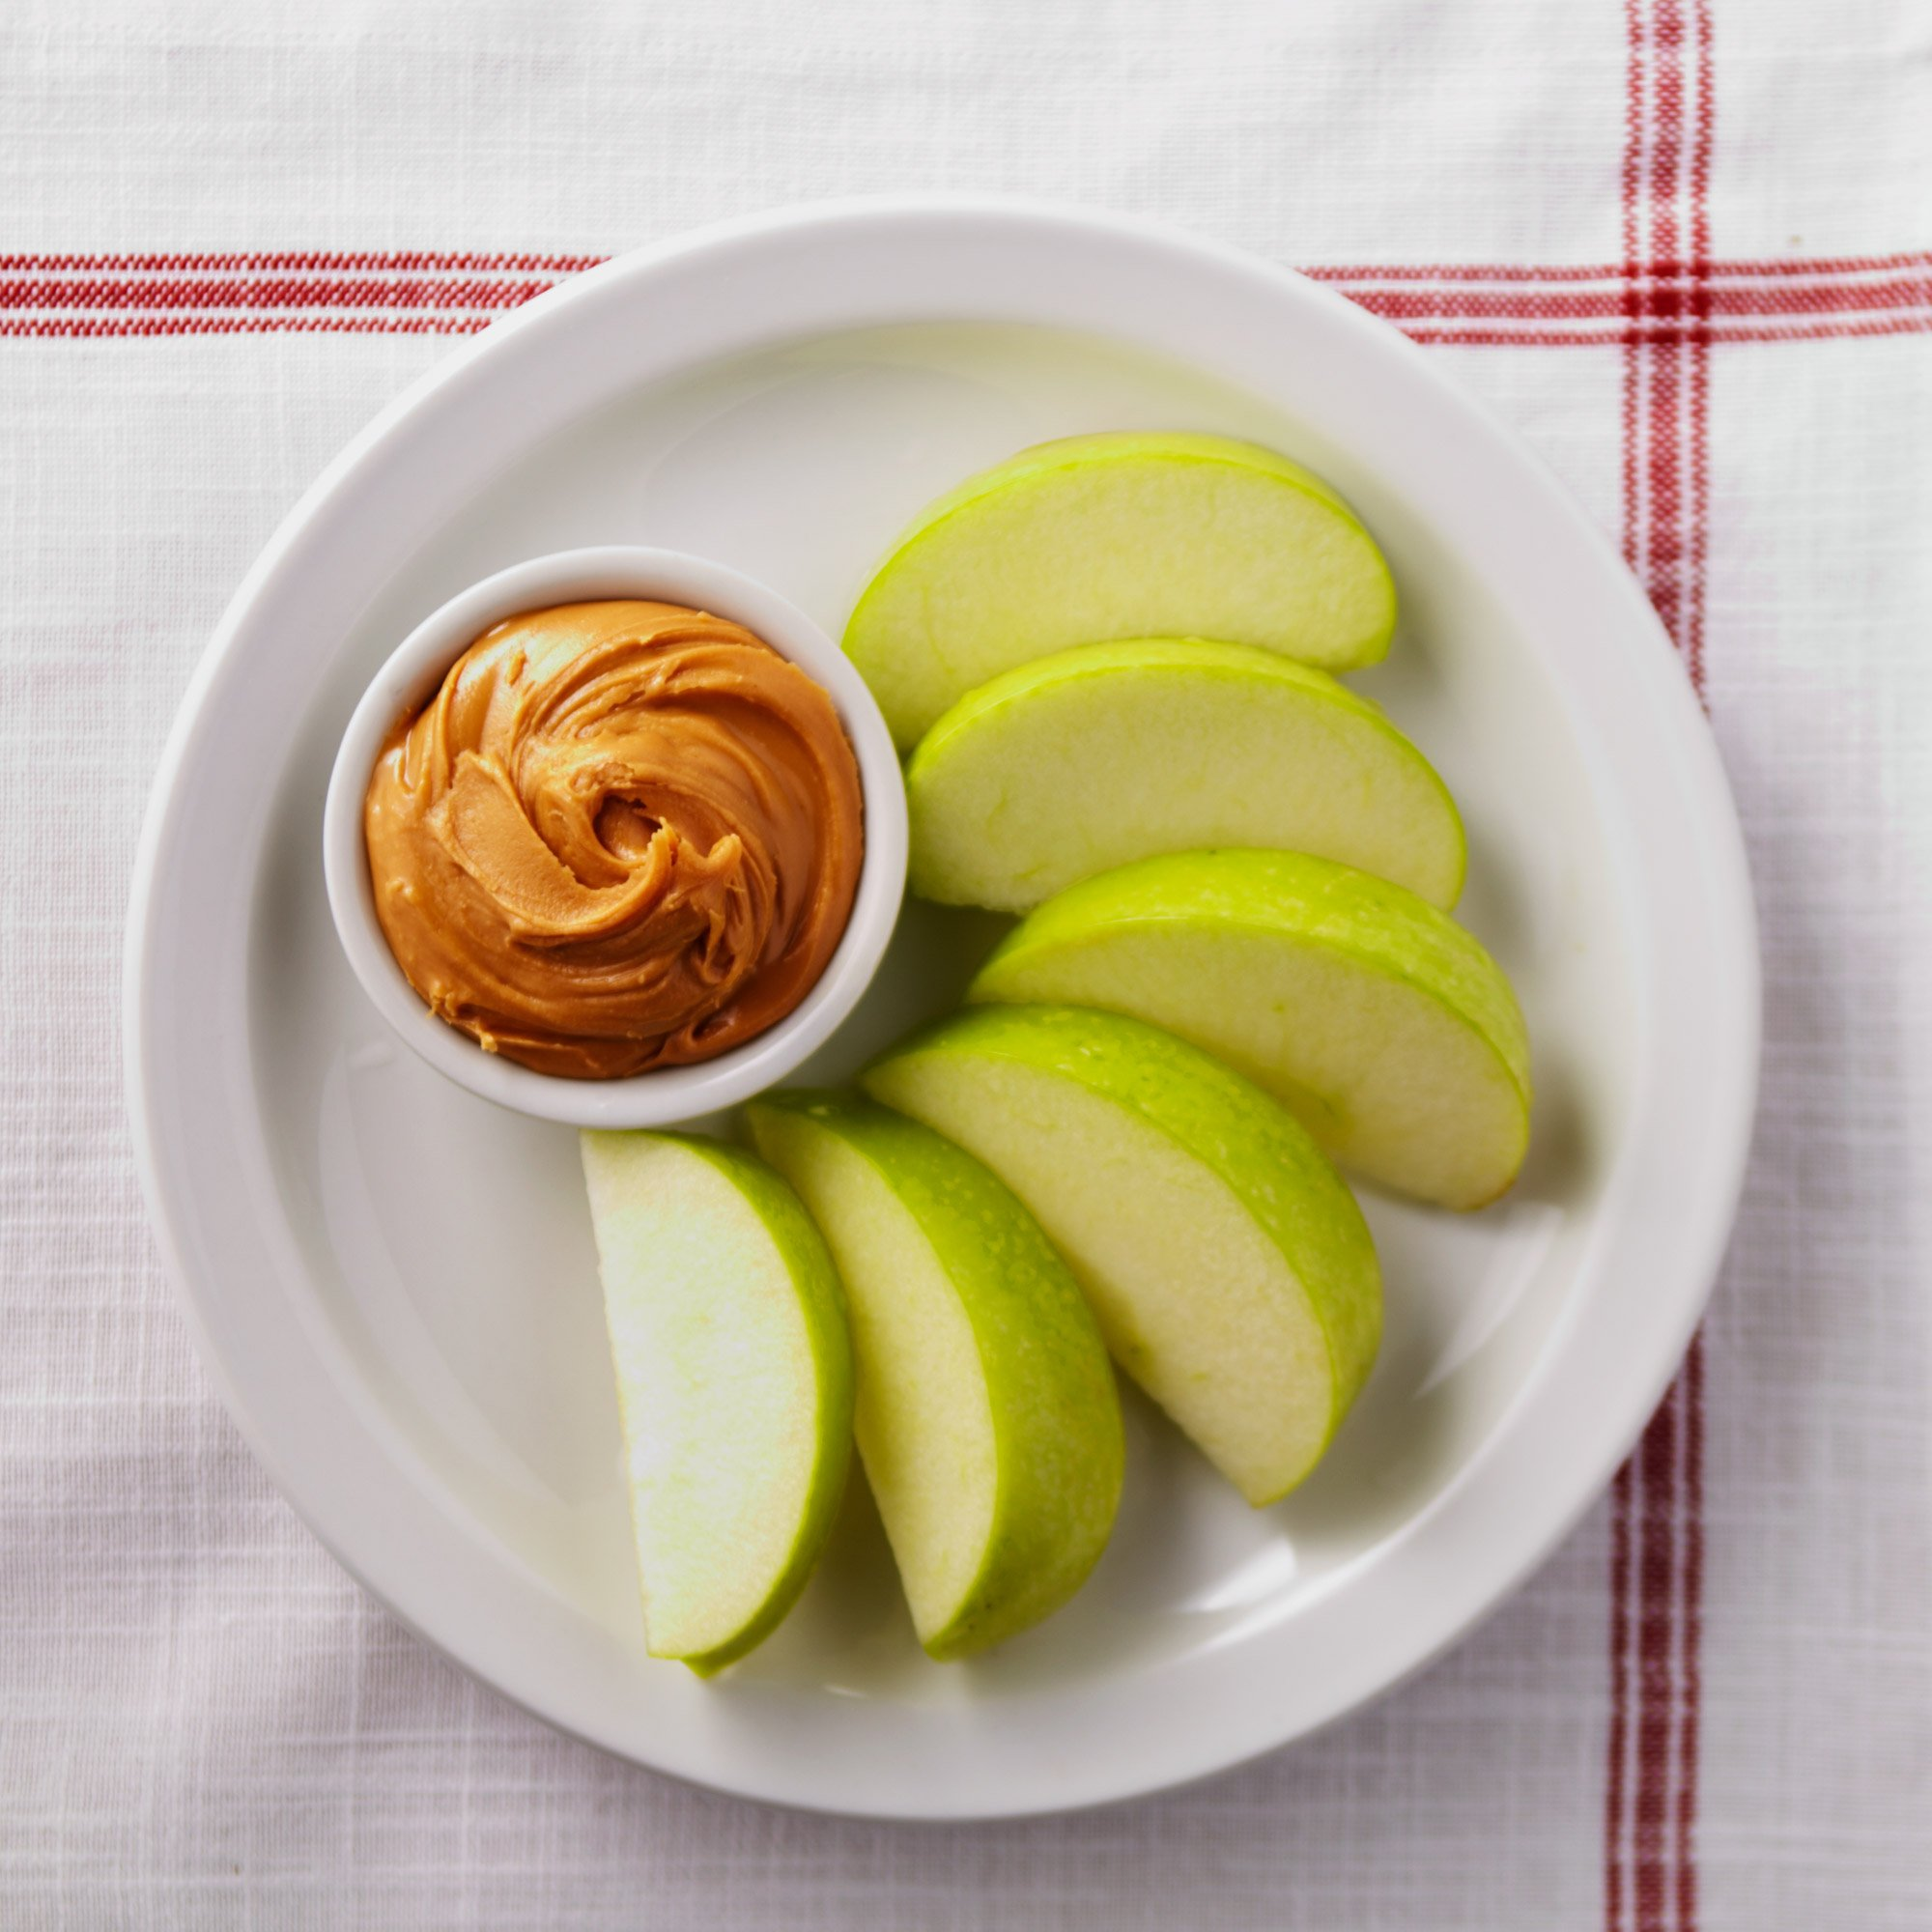 apple-slices-with-peanut-butter-snack-recipe